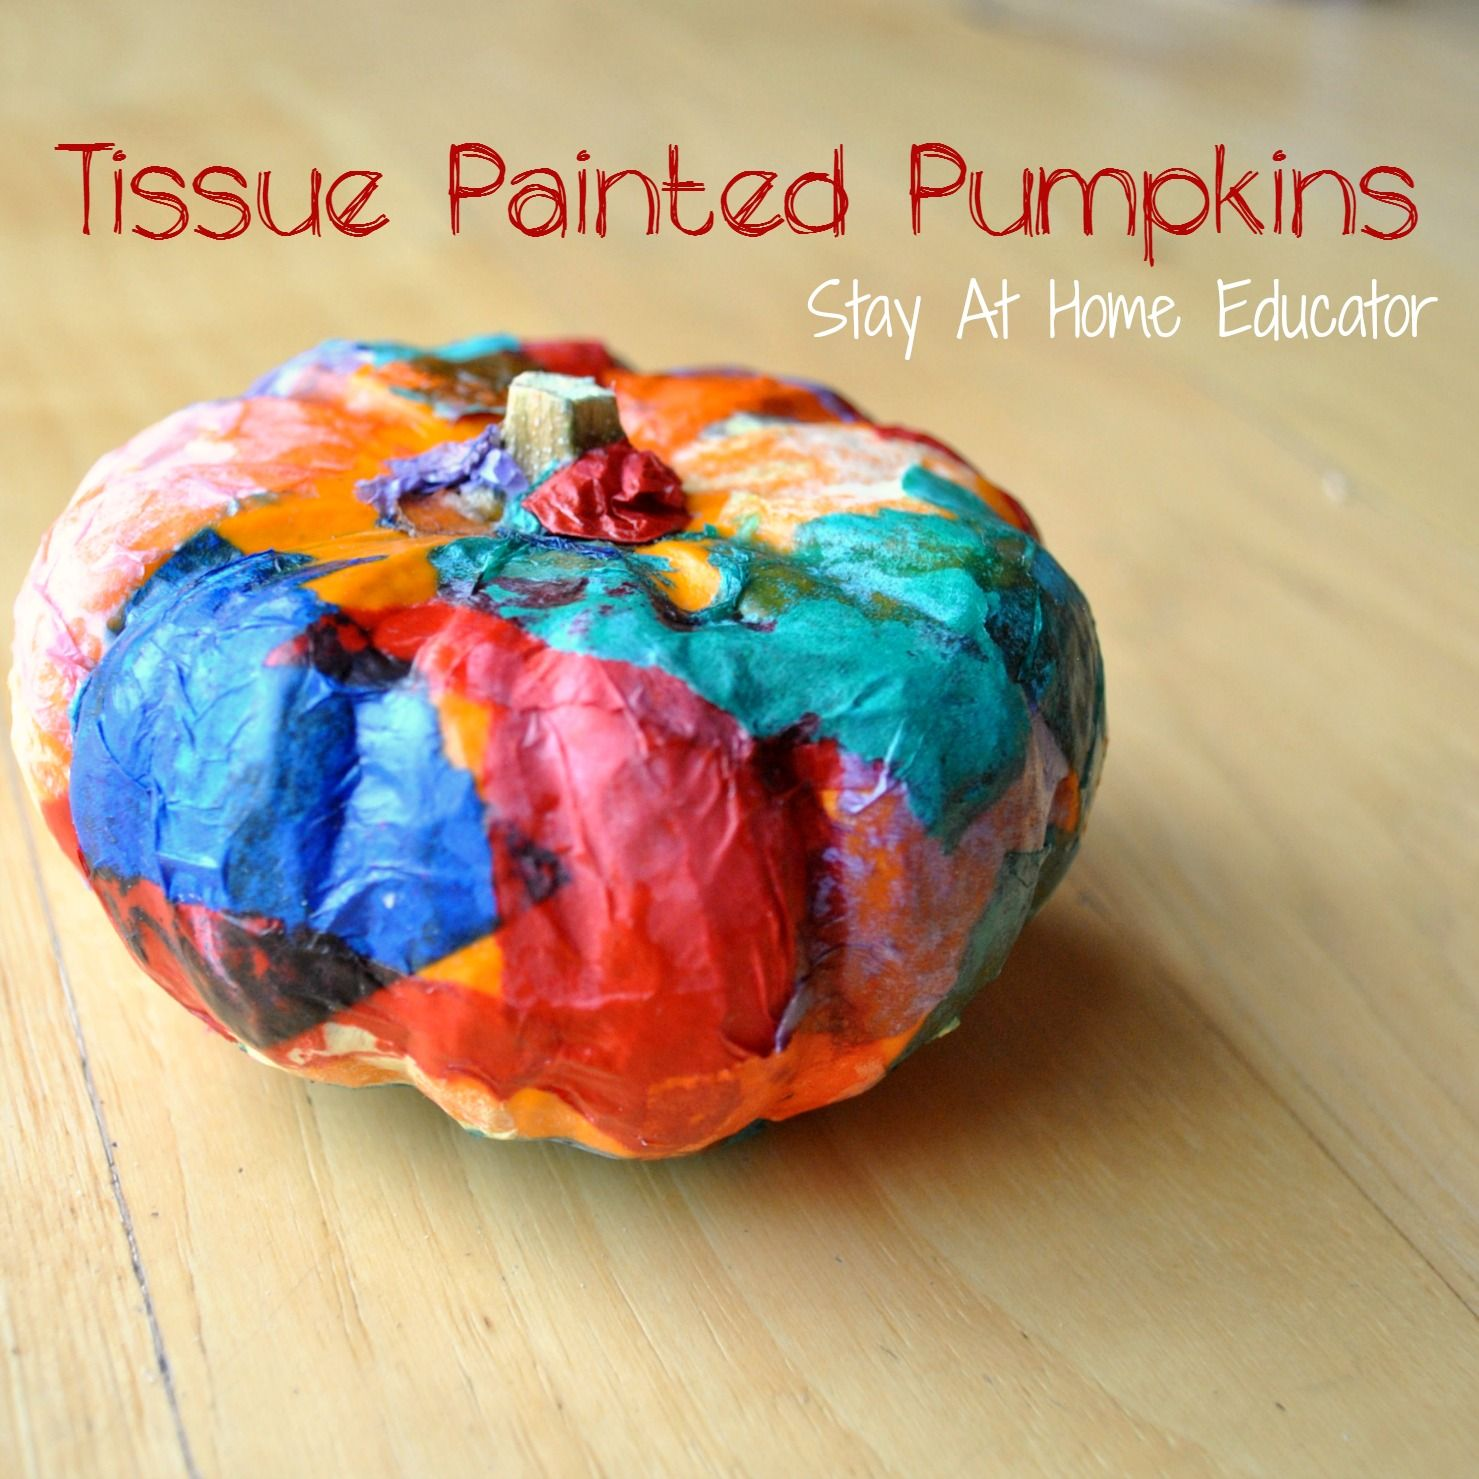 Tissue Painted Pumpkins